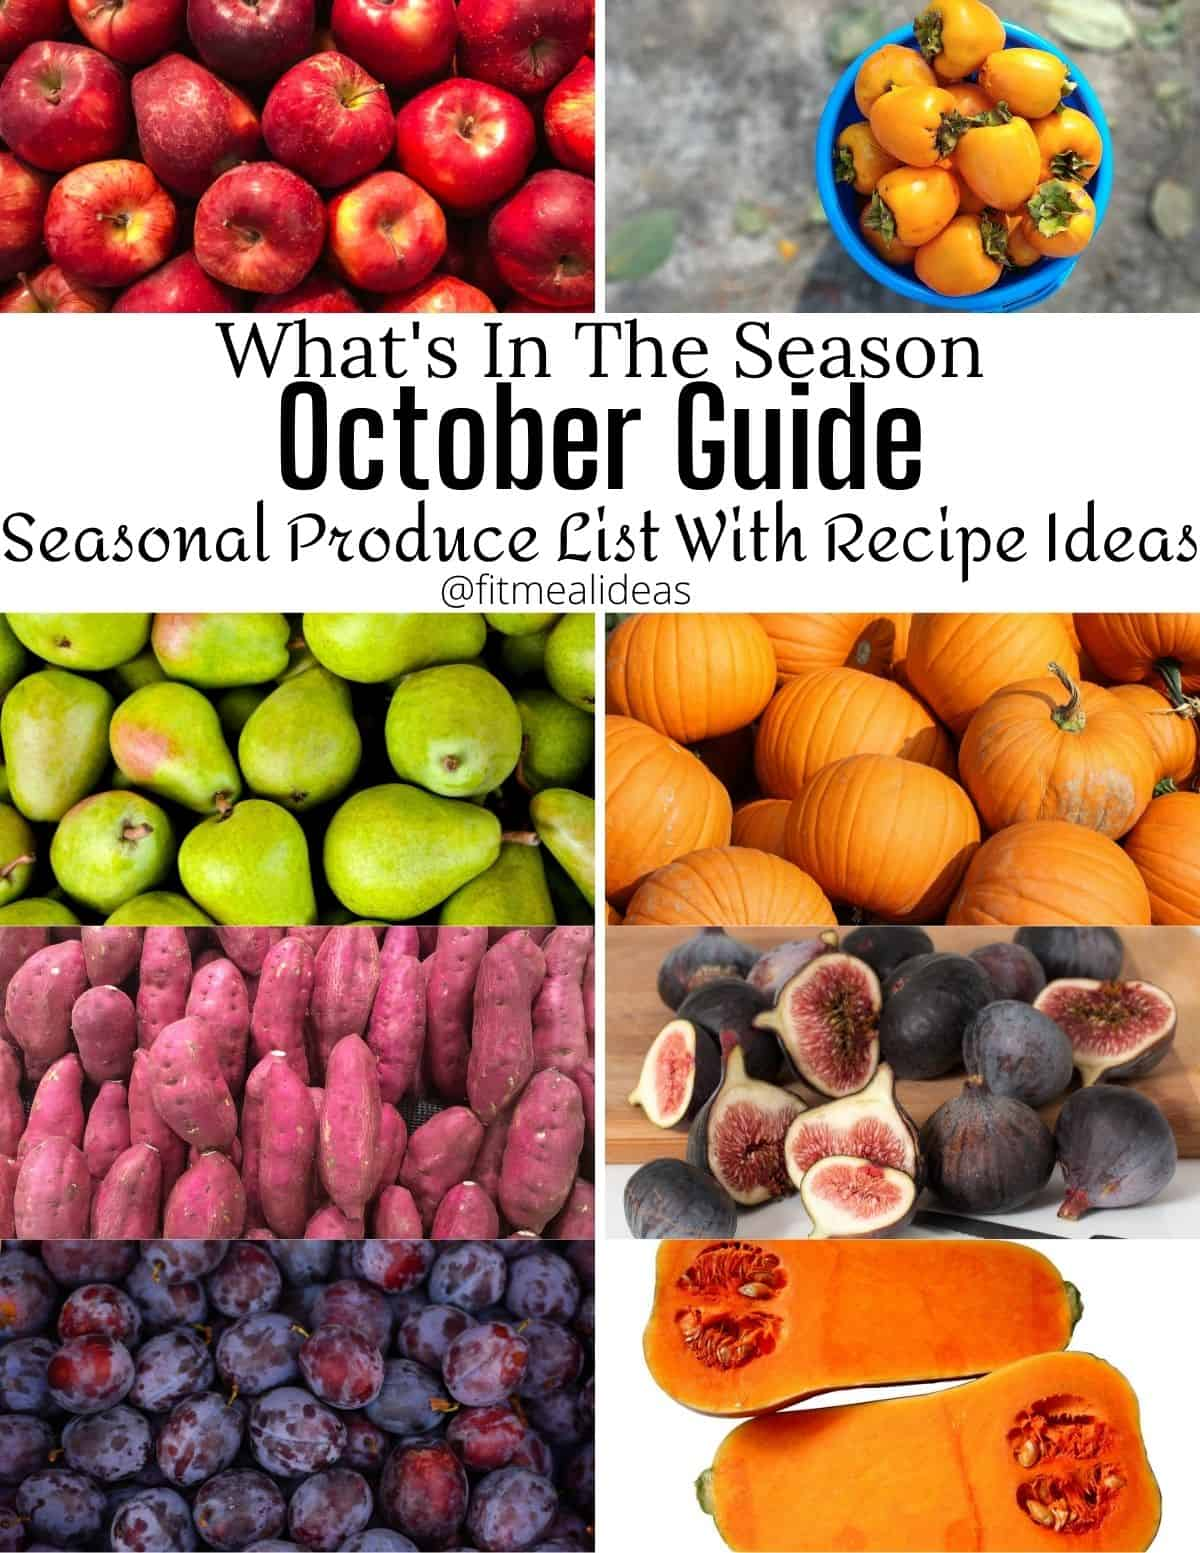 apple, persimmon, pear, pumpkin, sweet potato, plums, butternut squash, and figs images with the text whats in the season. October guide. seasonal produce list with recipe ideas.